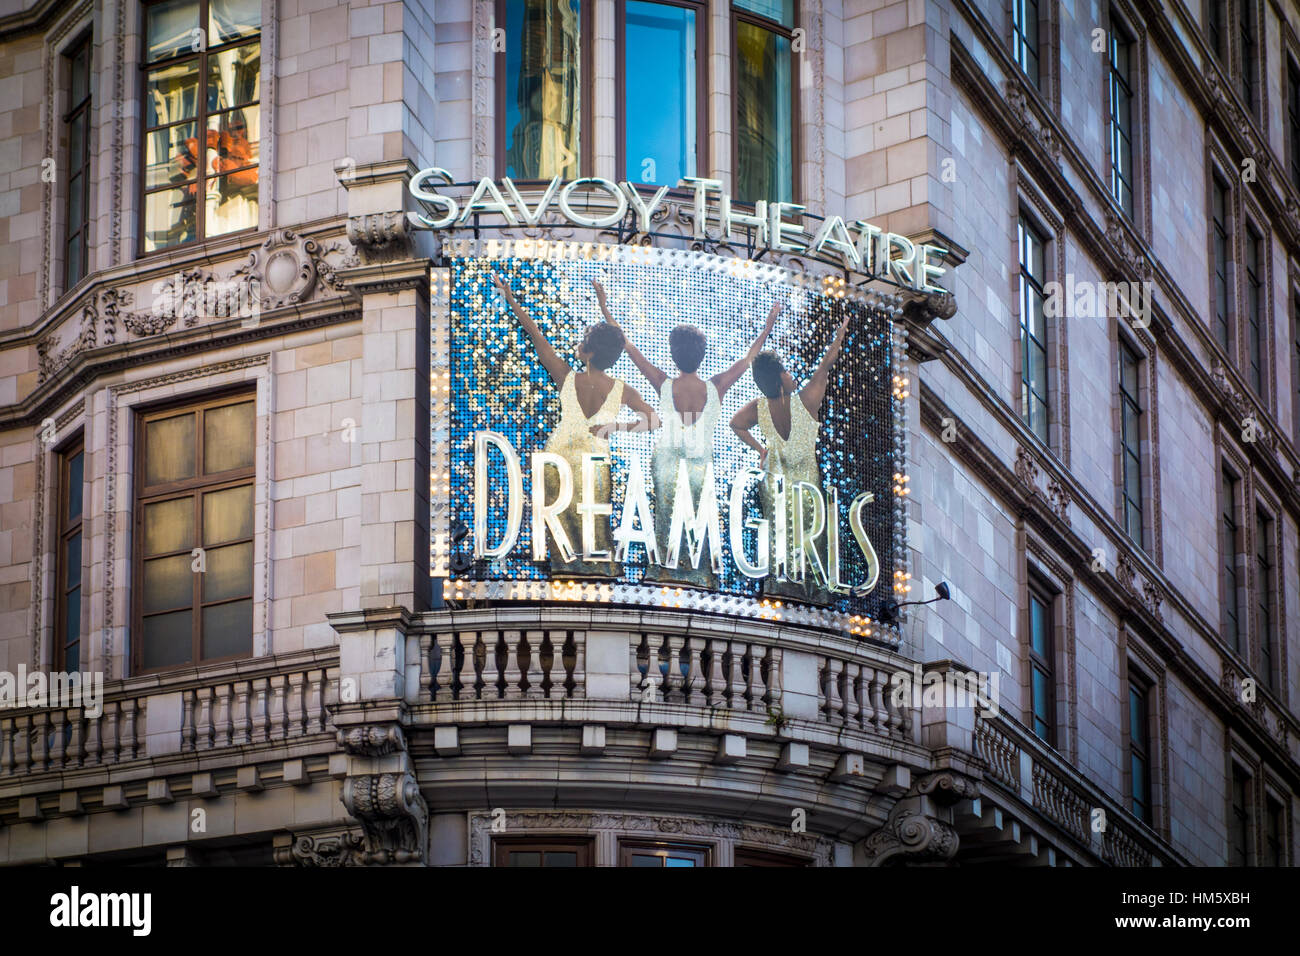 Dreamgirls sign outside the Savoy Theatre London UK - Stock Image & Savoy Theatre London Stock Photos u0026 Savoy Theatre London Stock ...